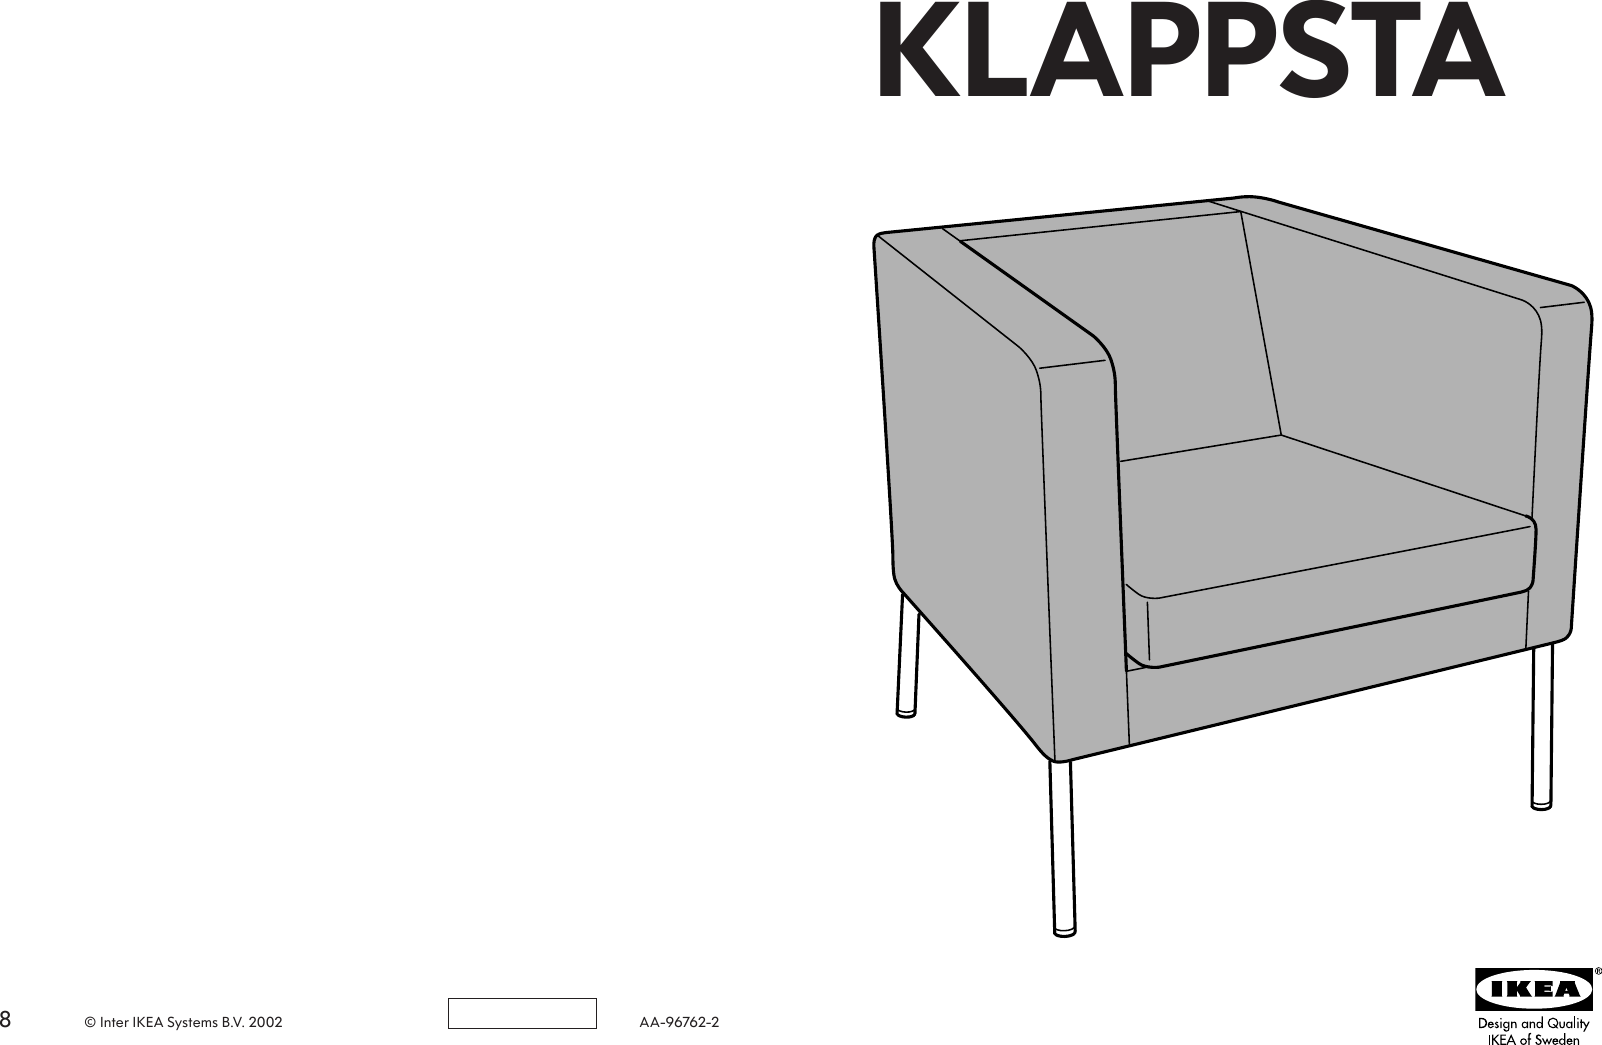 Nieuw Ikea Klappsta Chair Cover Assembly Instruction AH-93